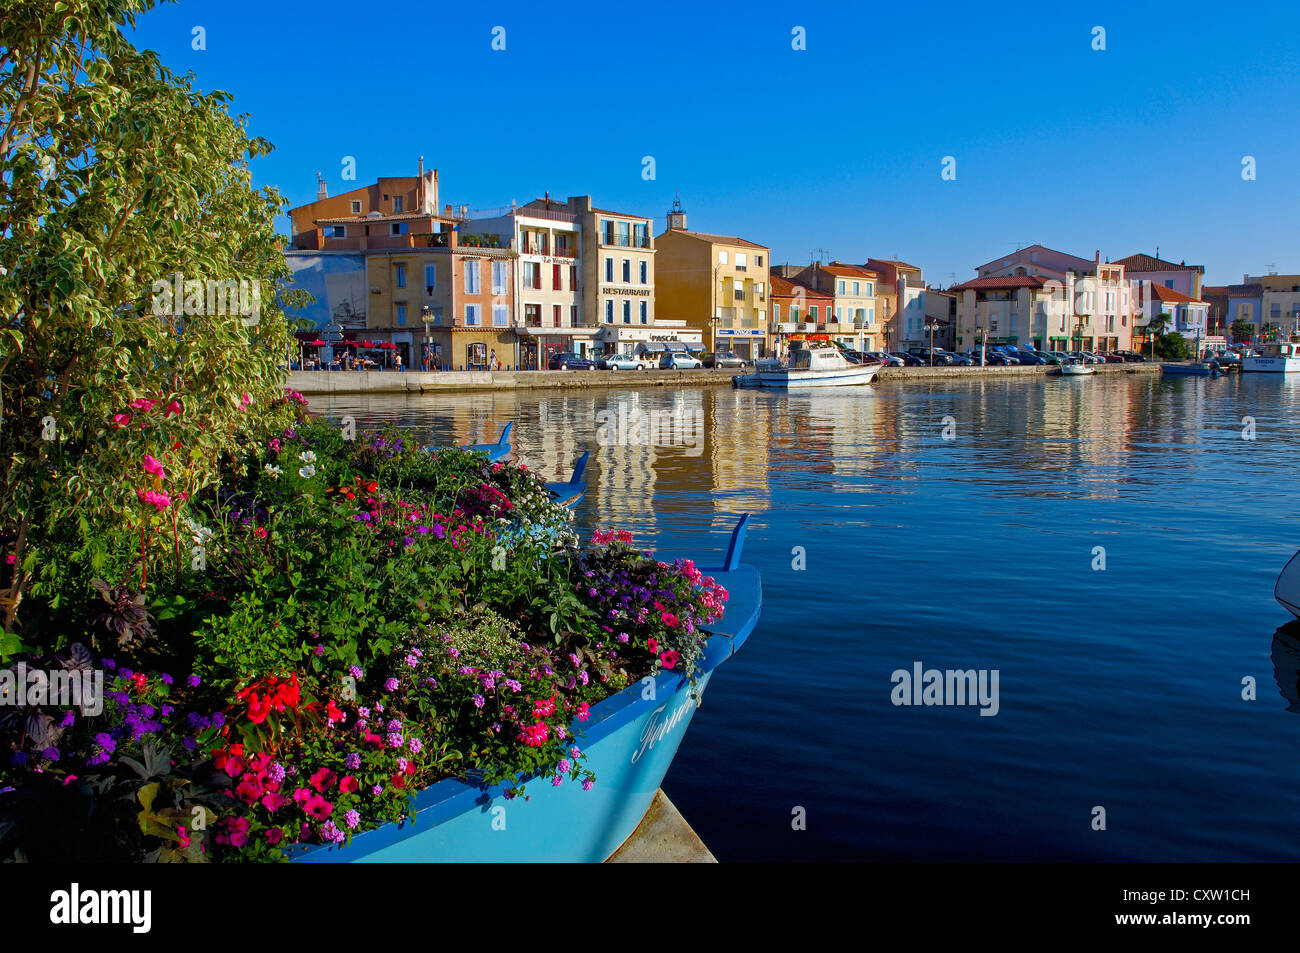 Martigues, Bouches du Rhone, Provence, France, Europe - Stock Image